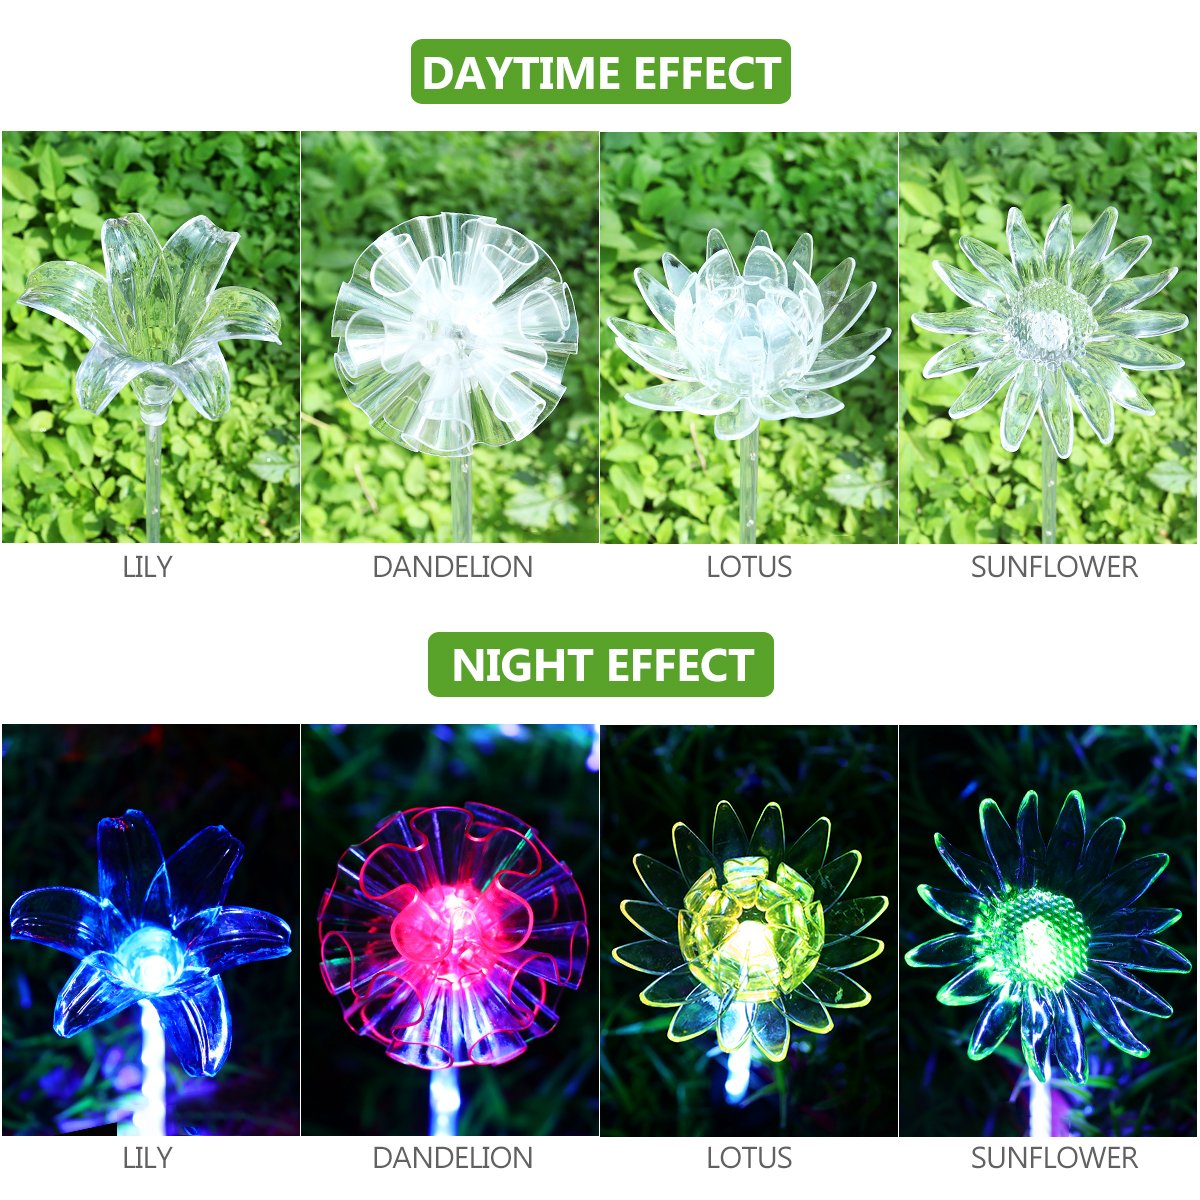 YUNLIGHTS 4pcs Solar Garden Lights Outdoor Garden Stake Lights Multi-Color Changing LED Solar Lights with Purple LED Light Stake for Garden Patio Backyard Decoration (Lotus,Dandelion,Lily,Sunflower) by YUNLIGHTS (Image #4)